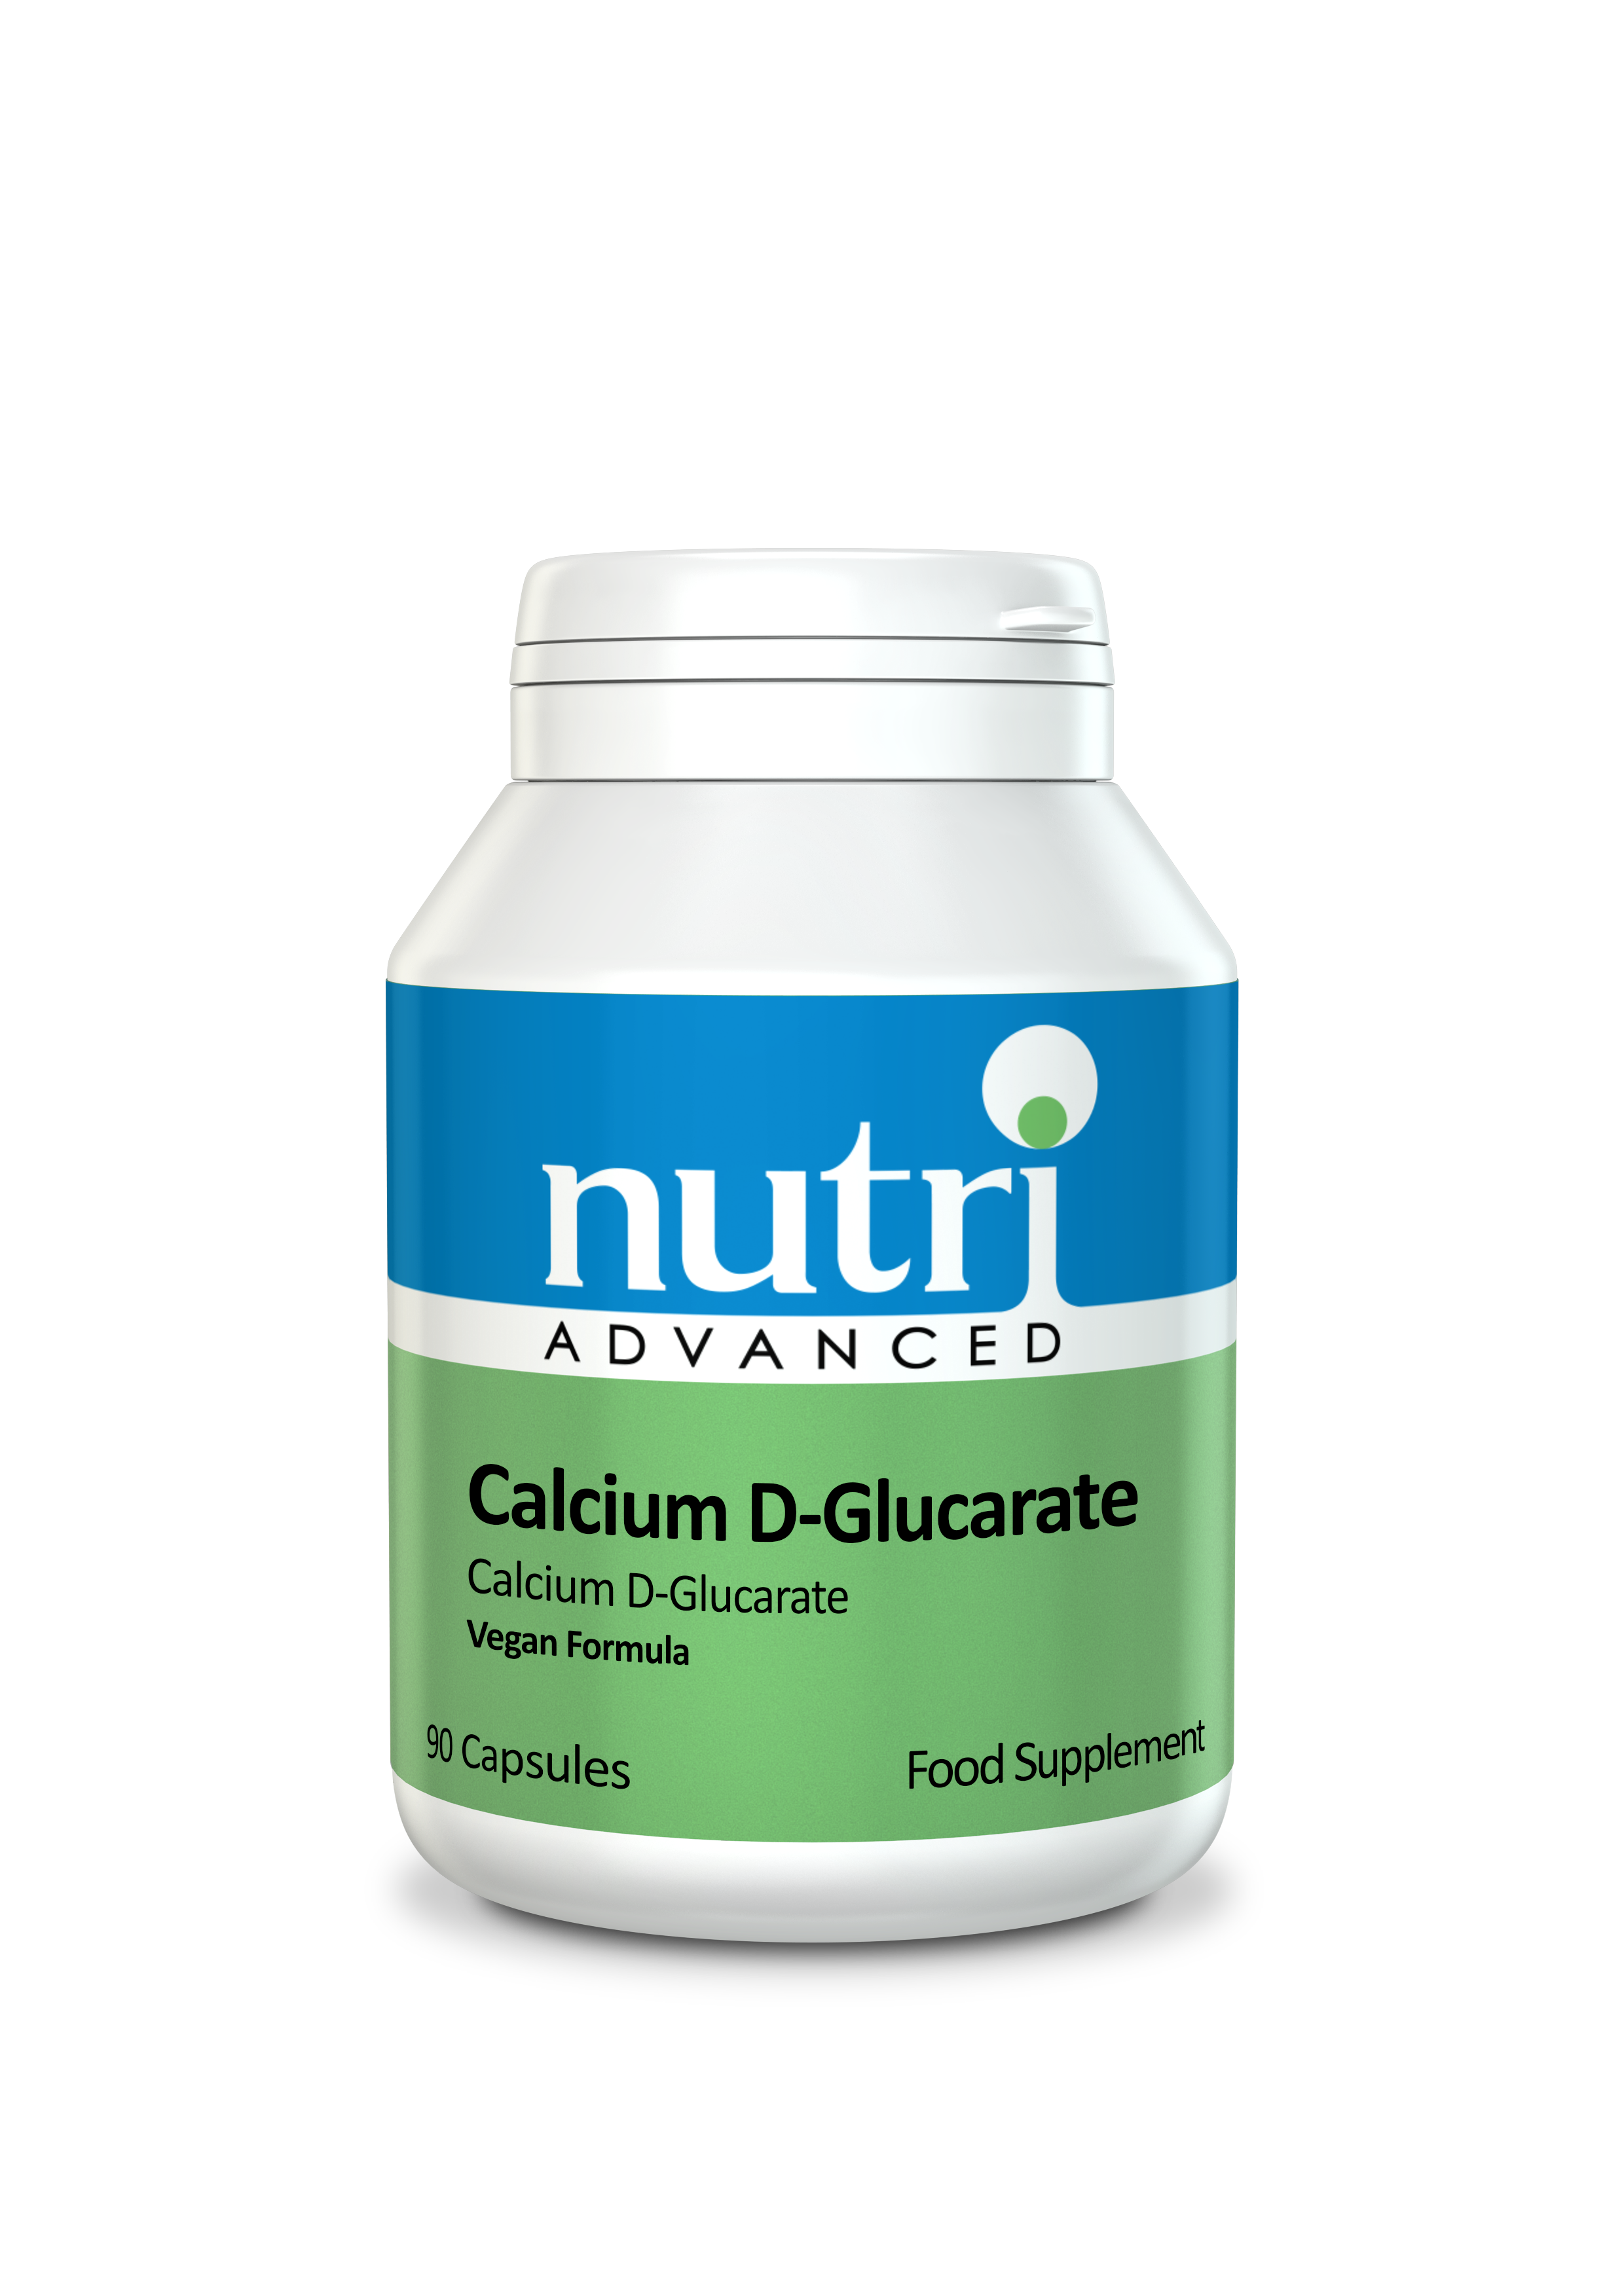 Nutri Advanced Calcium D-Glucarate (90 Caps)